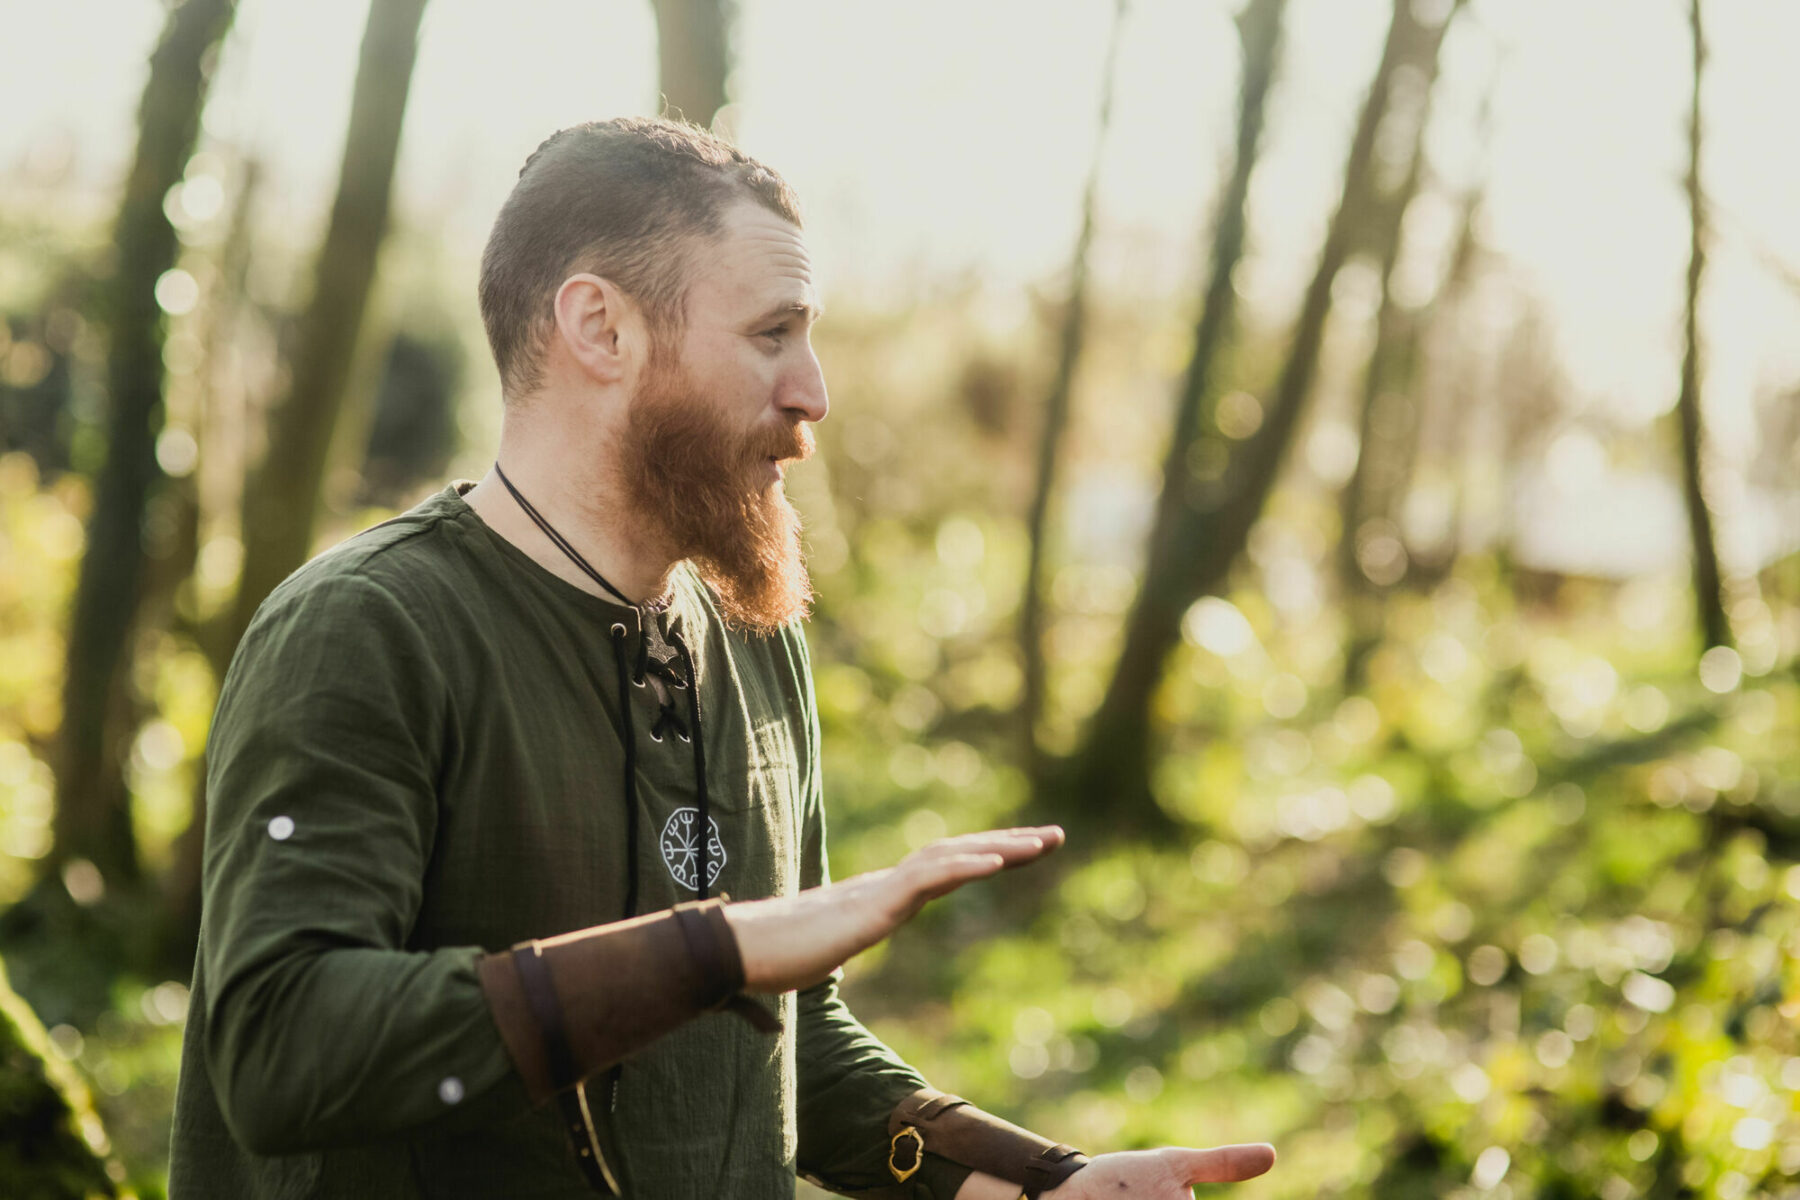 Learn survival skills with Bushman Rob at our new Finnebrogue Woods School of Bushcraft